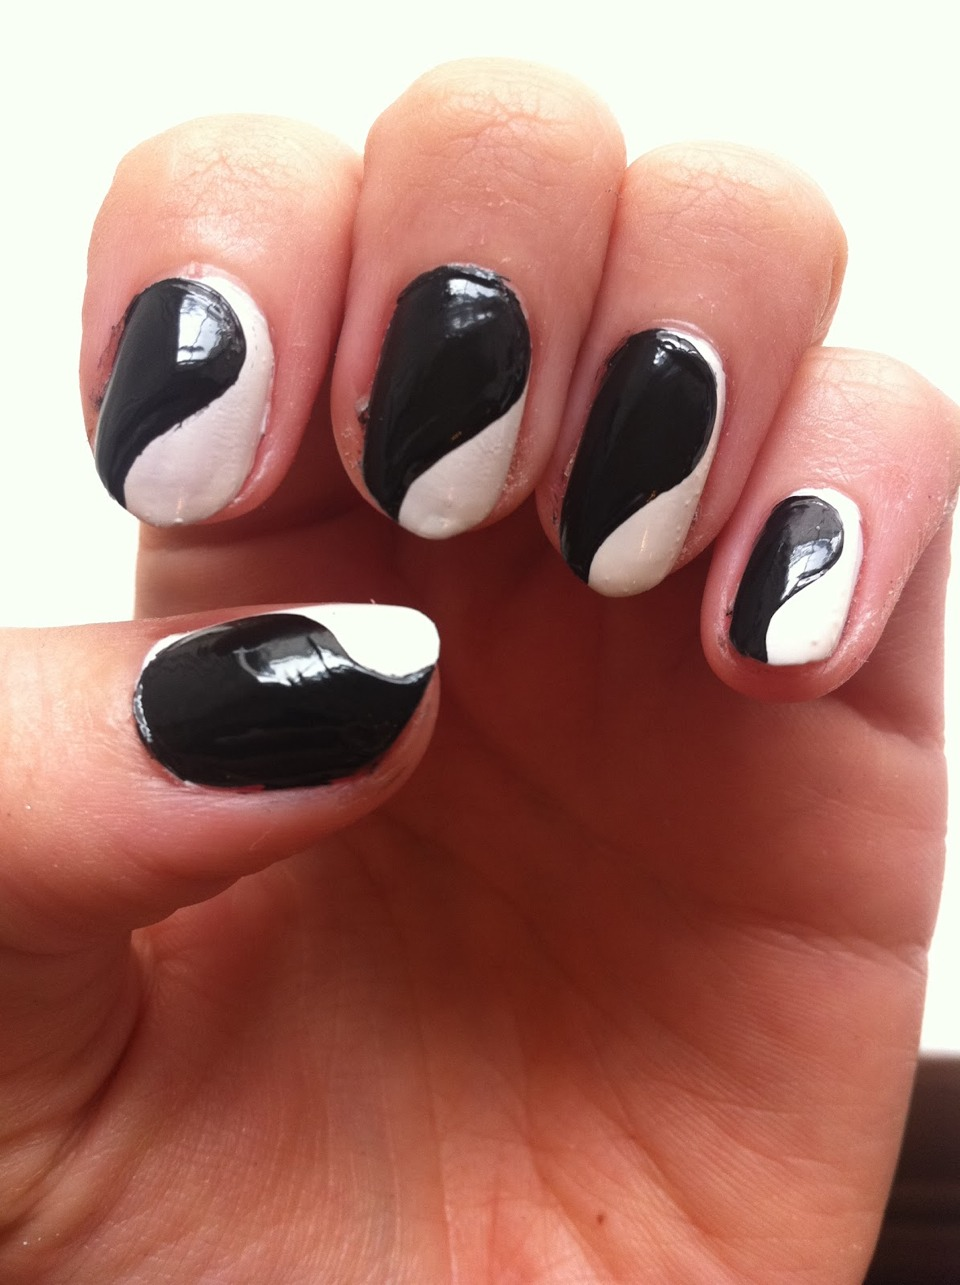 Your nails should look like this after words